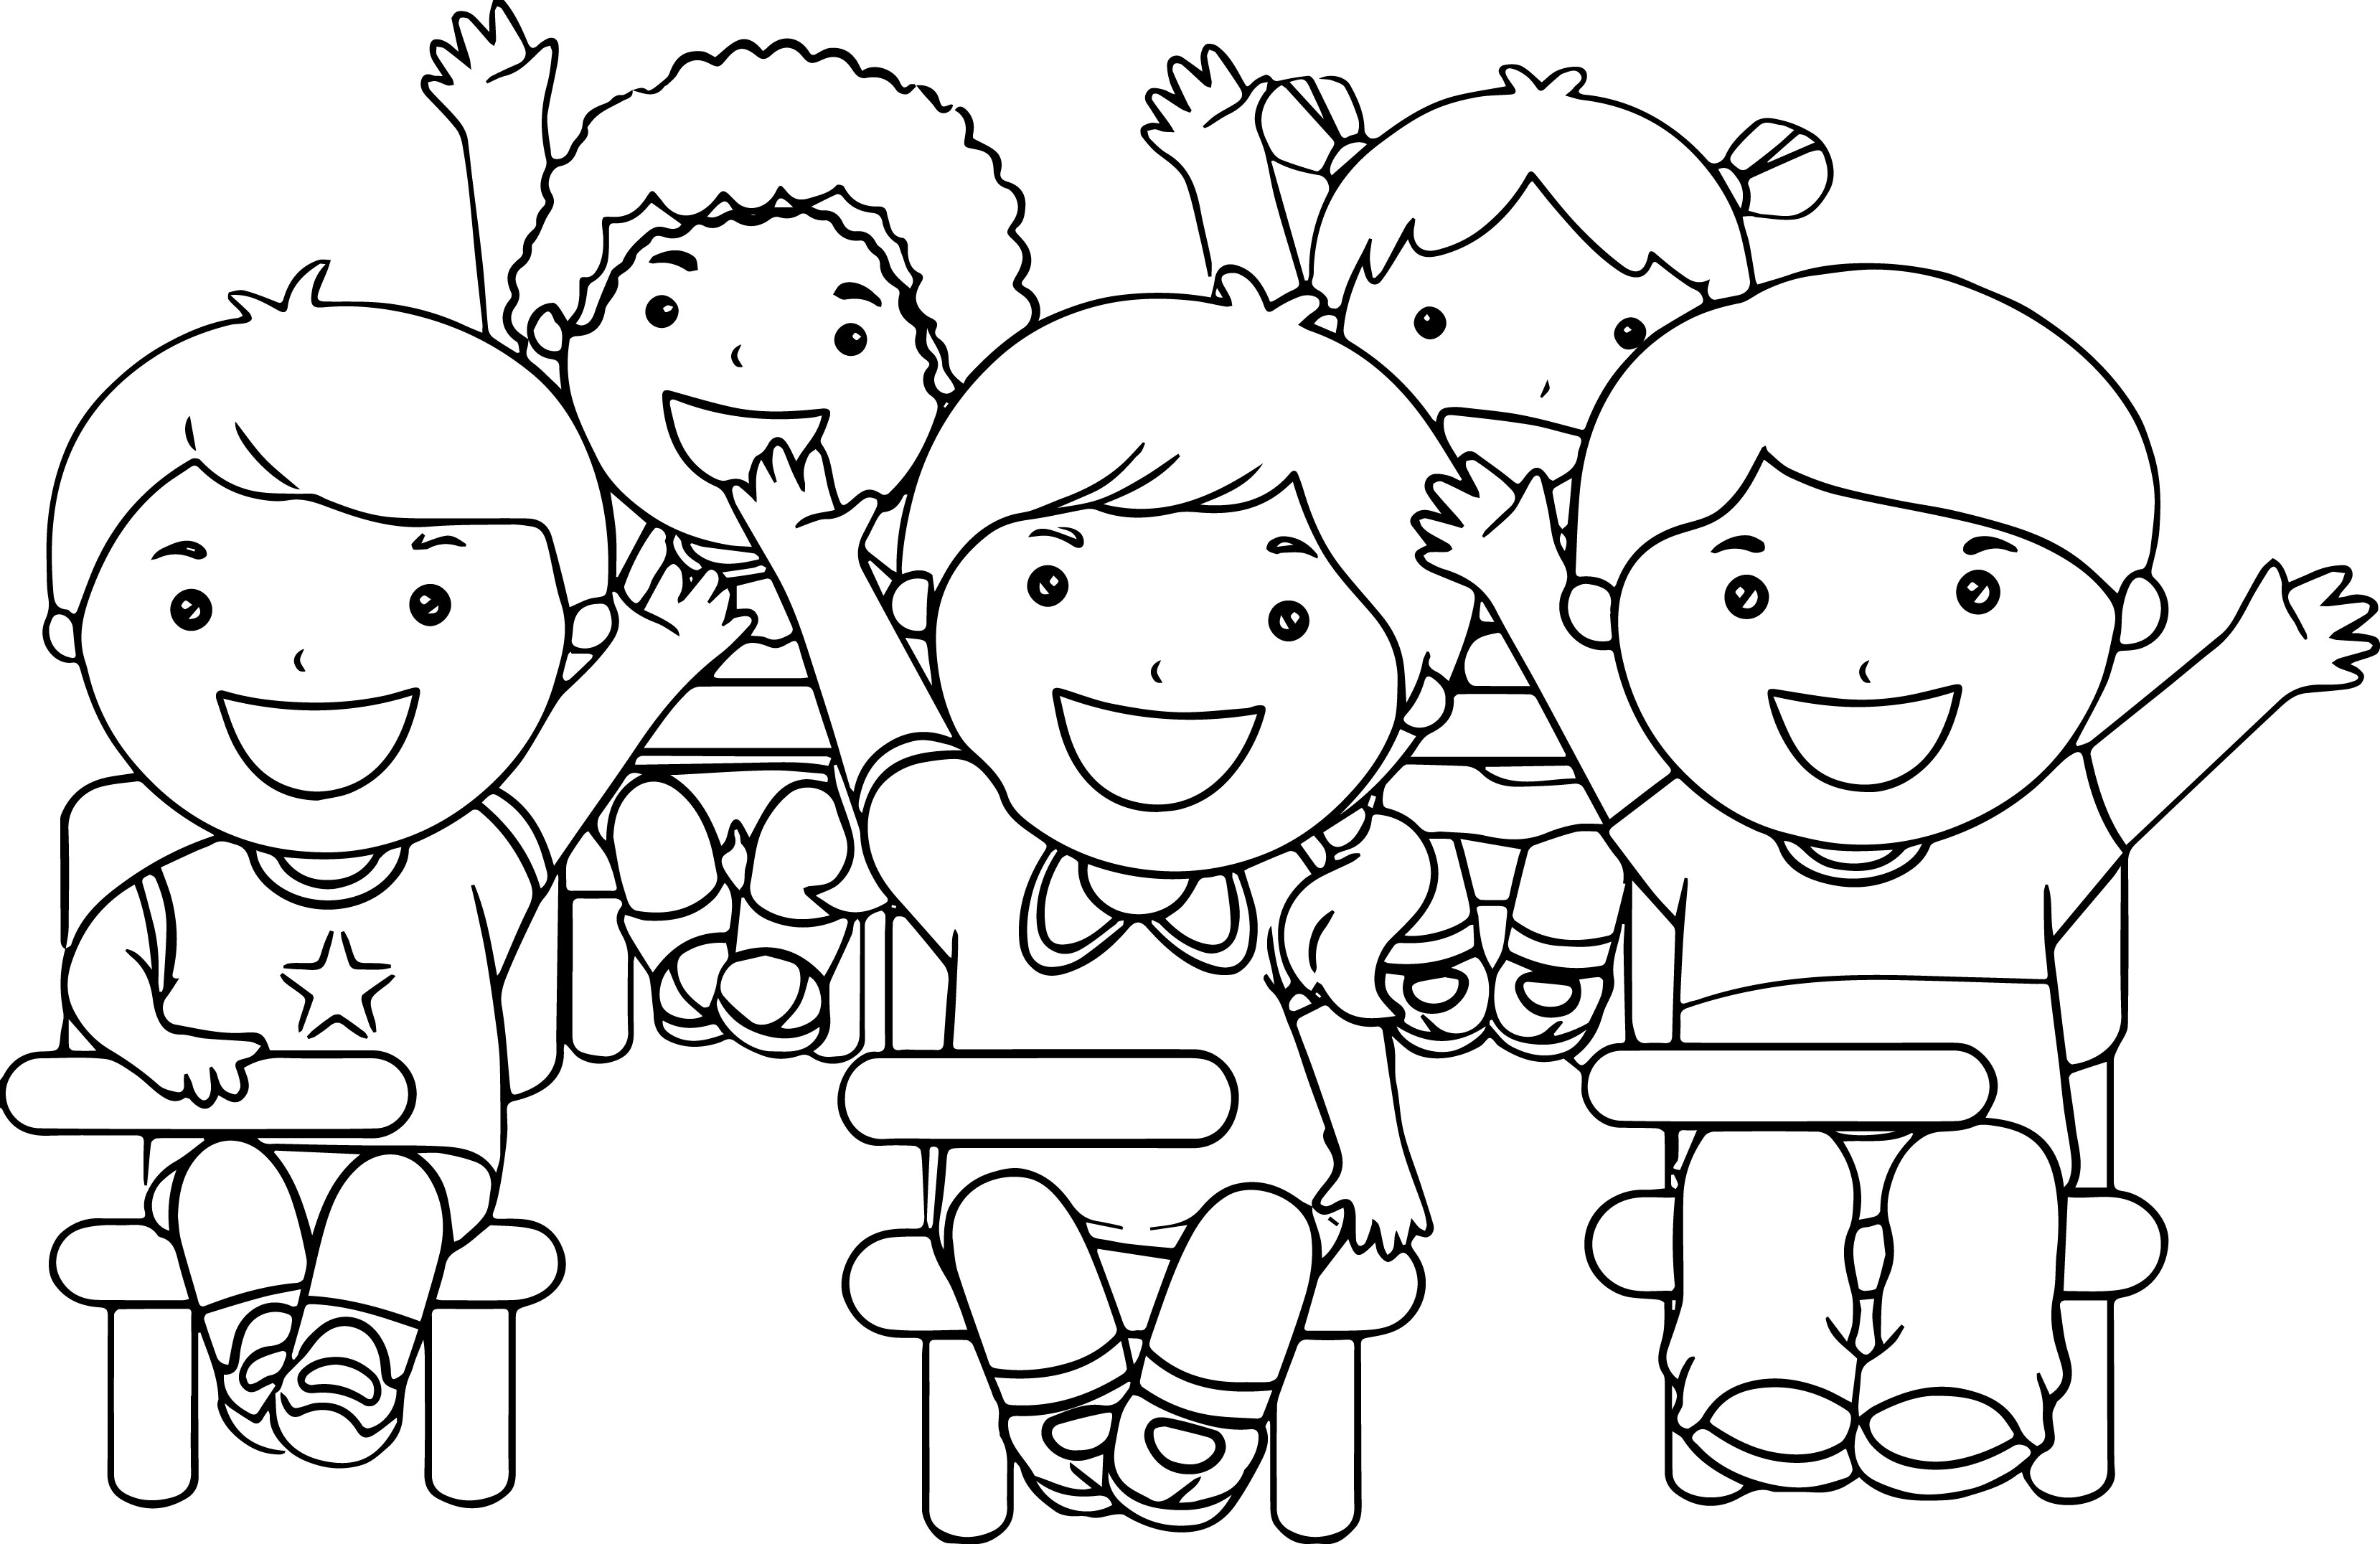 k coloring pages for kids - photo #42